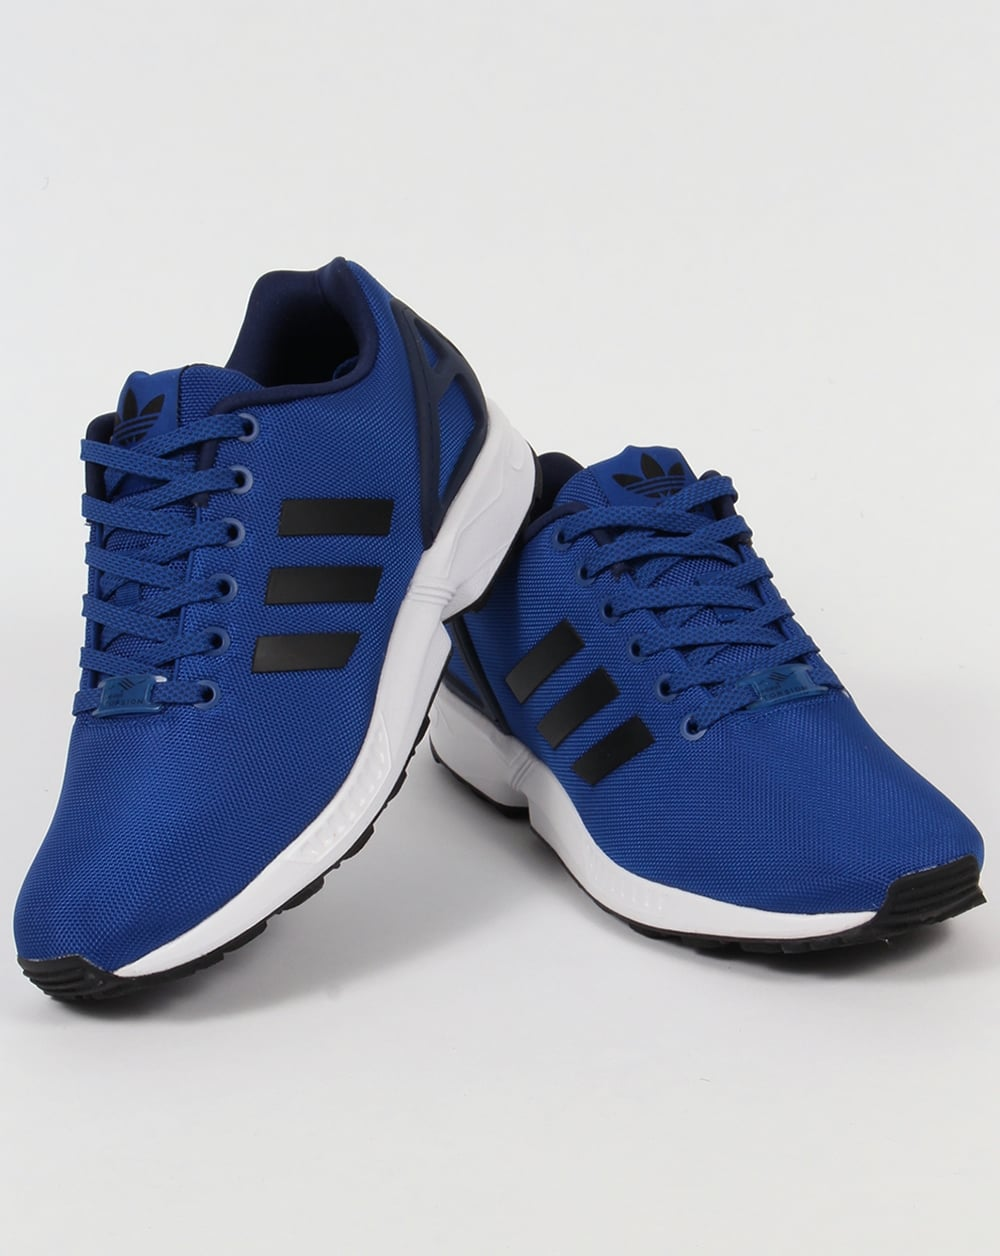 check out 3d563 26566 ... shop adidas zx flux trainers royal blue black 2012f 23eeb